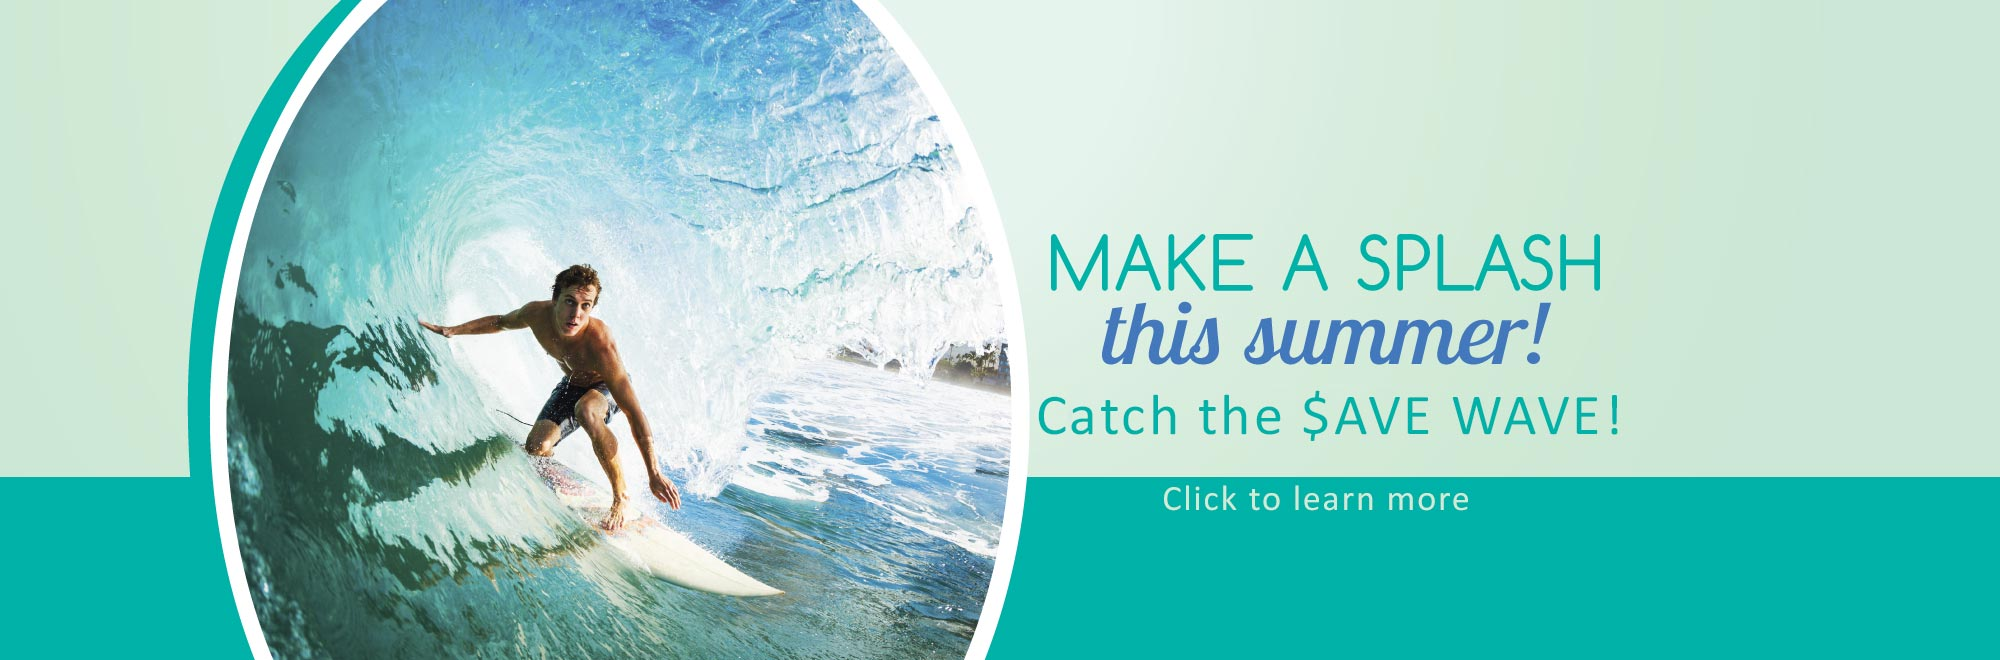 Make a Splash this Summer